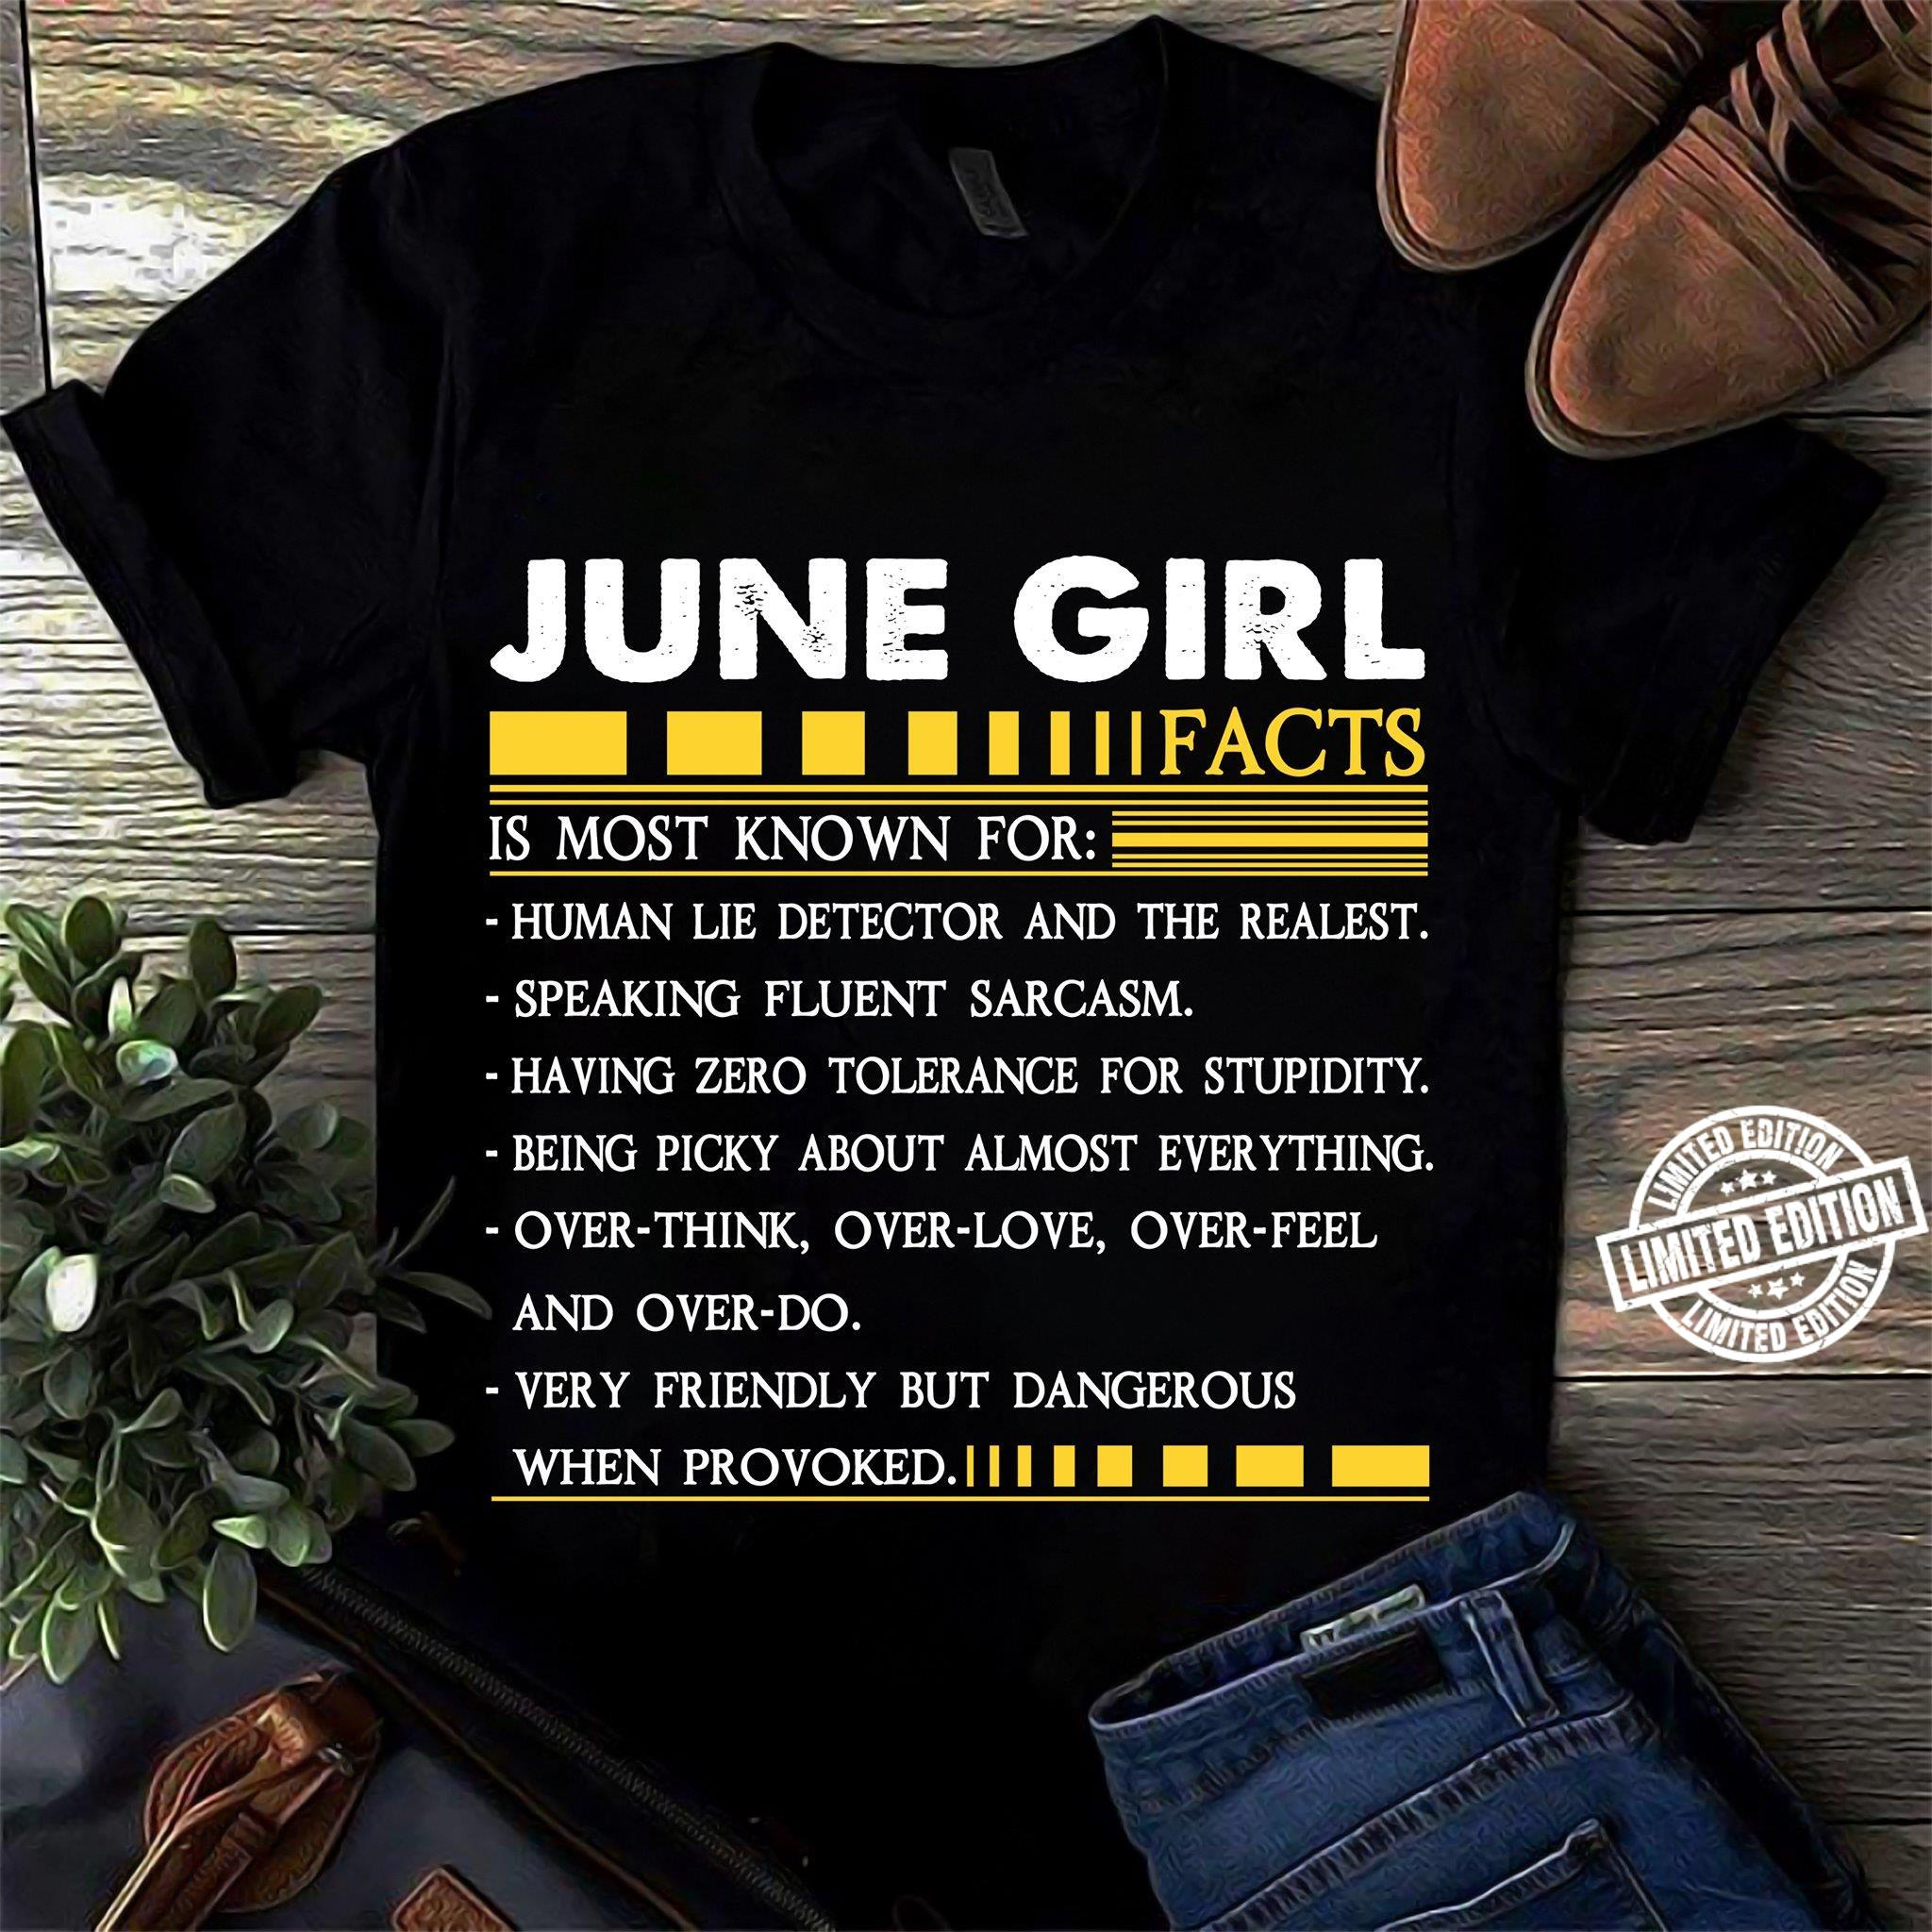 June girl facts is most known for human lie detector and the realest speaking fluent sarcasm having zero tolerance for stupidity shirt